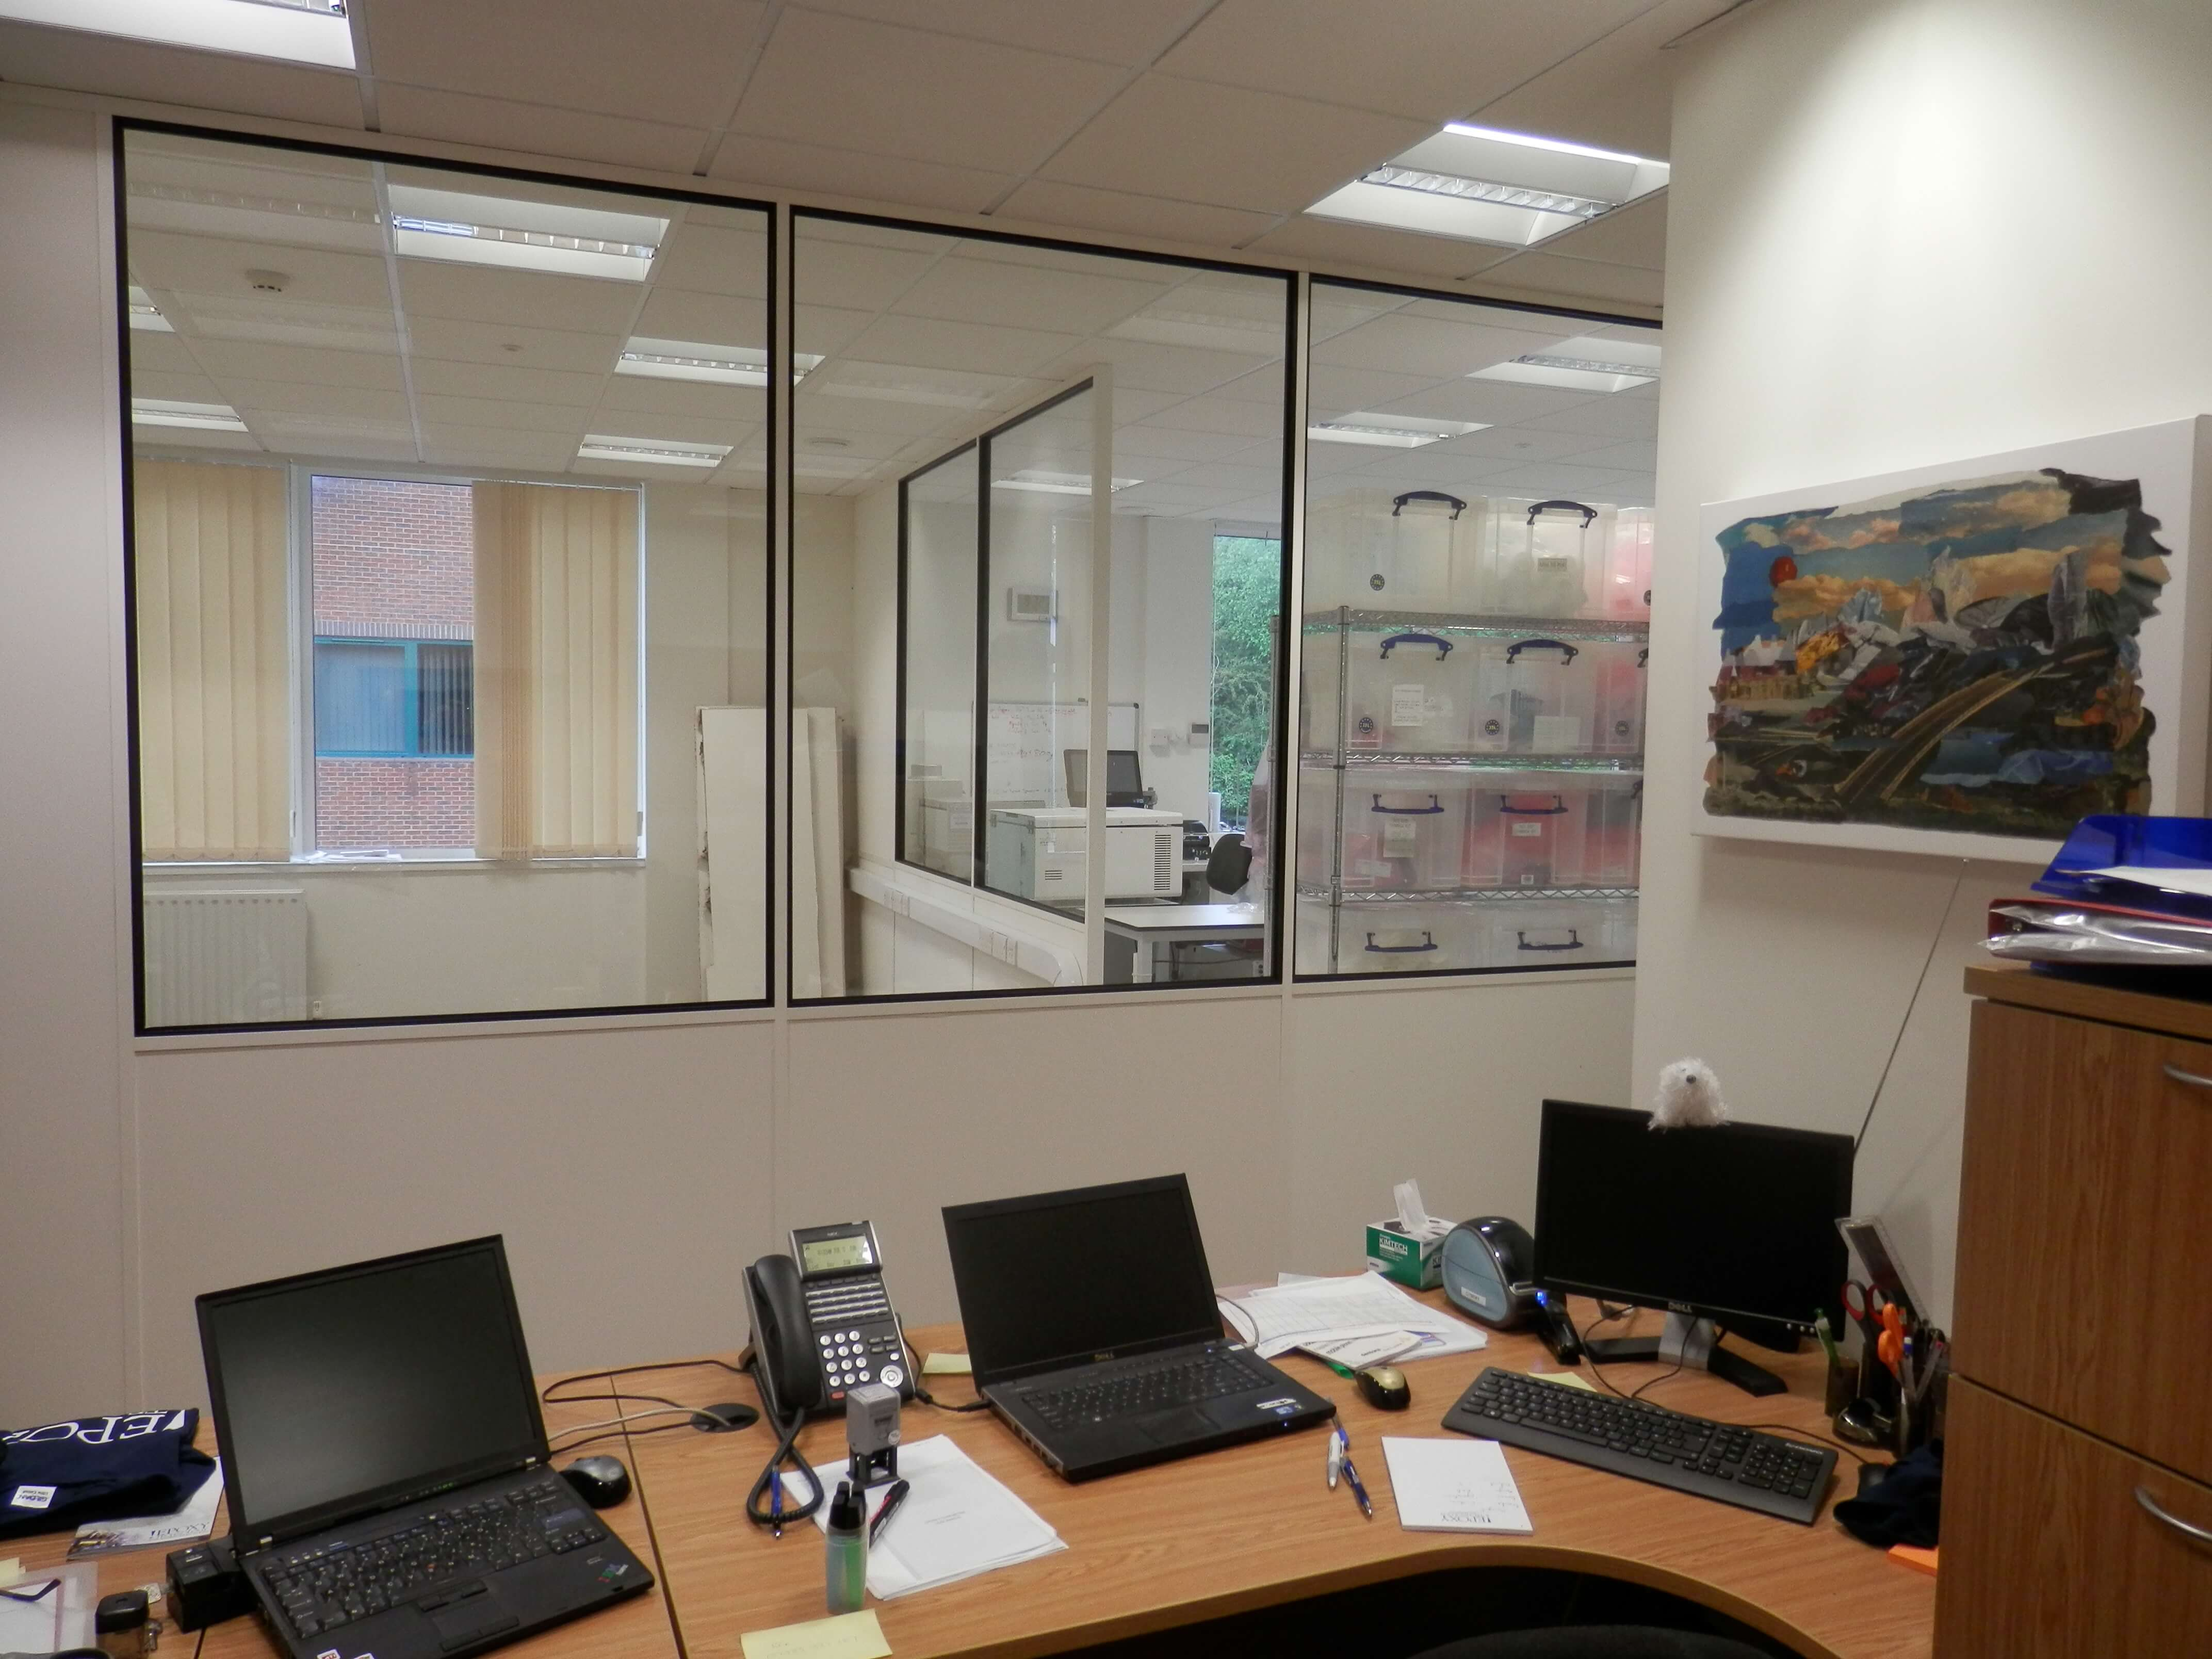 View of new wall from inside the office area.